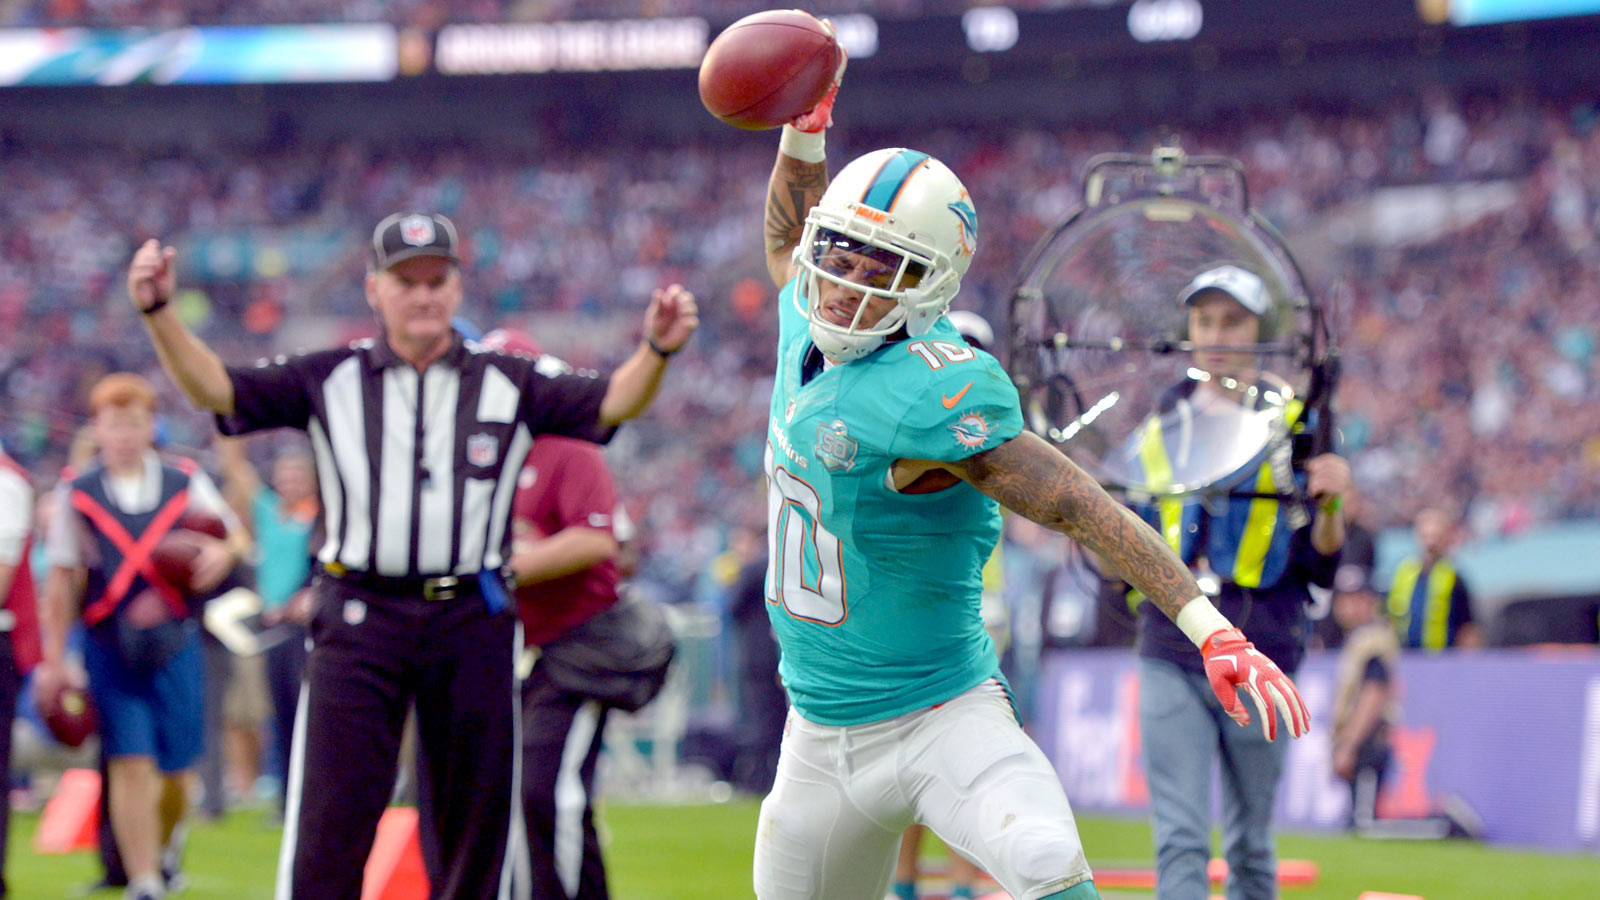 Kenny Stills replaces Greg Jennings as starting WR for Dolphins